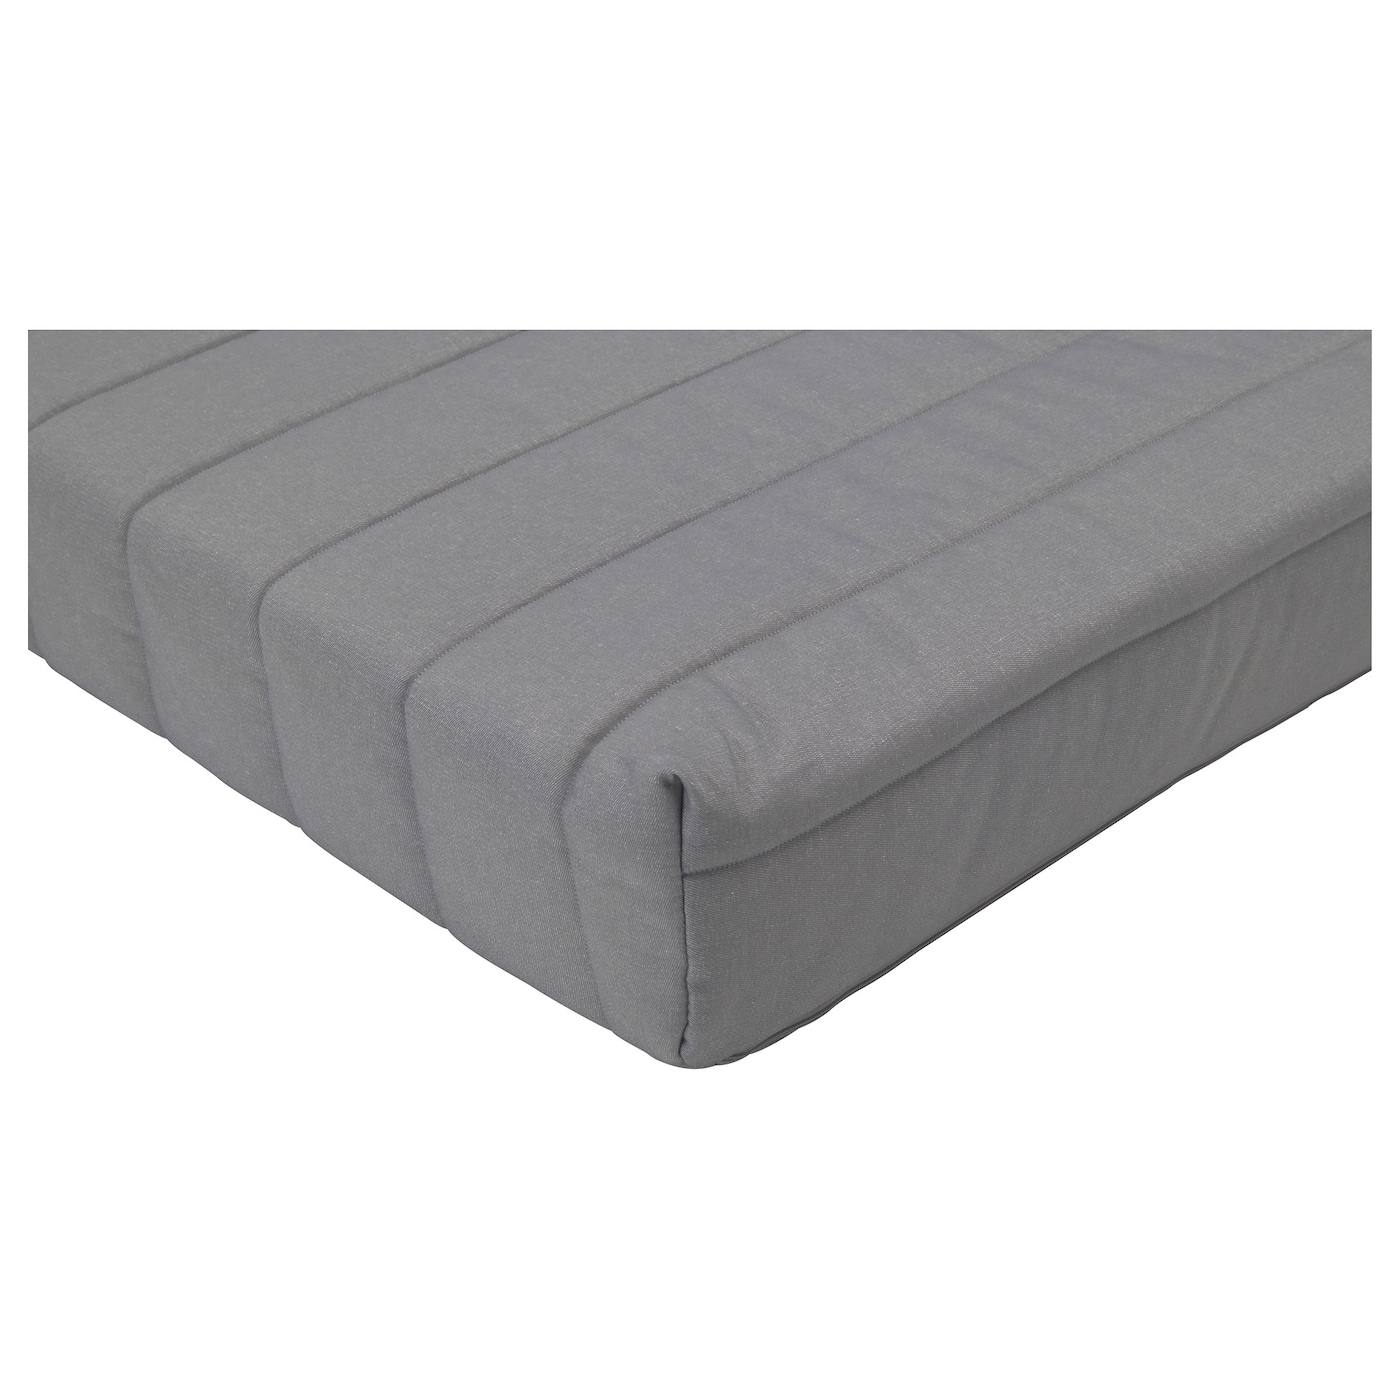 IKEA BEDDINGE LÖVÅS mattress A simple, firm foam mattress for use every night.